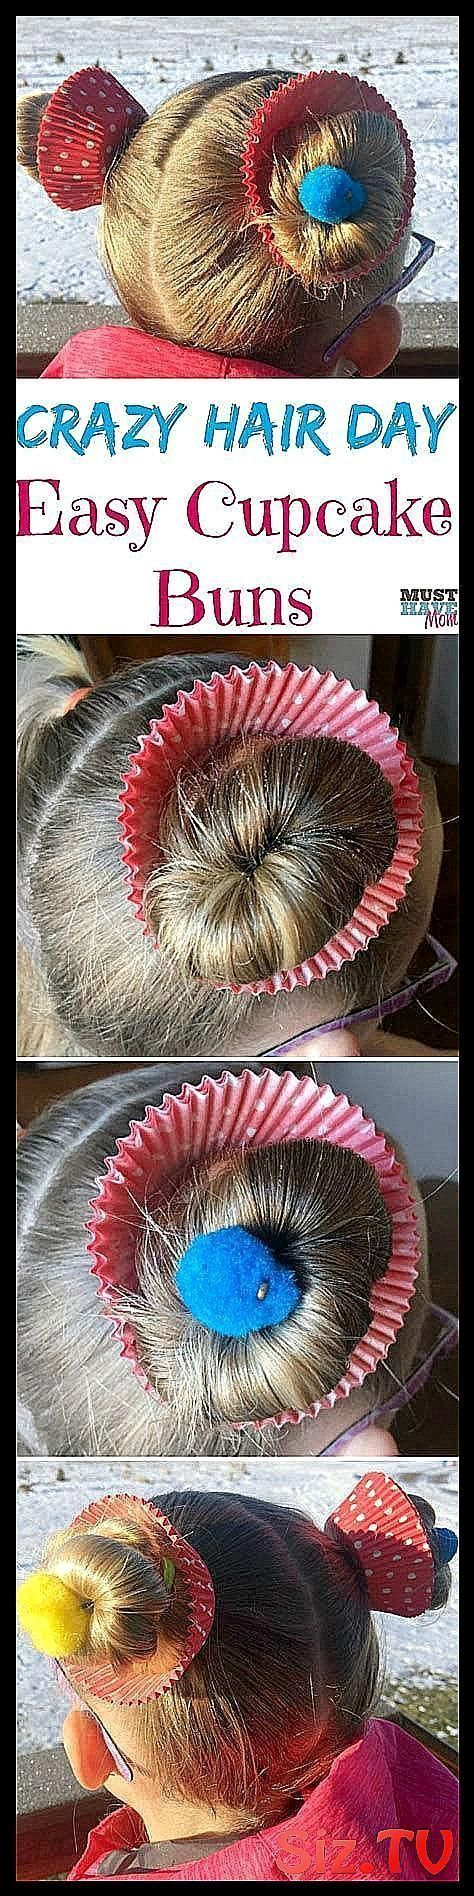 The 25 Best Ideas of Crazy Hair Days on Pinterest Hair D ...- The 25 Best Ideas of Crazy Hair Days on Pinterest Hair Day We have compiled our favorite... - #compiled #crazy #ideas #pinterest - #New #crazyhatdayideas The 25 Best Ideas of Crazy Hair Days on Pinterest Hair D ...- The 25 Best Ideas of Crazy Hair Days on Pinterest Hair Day We have compiled our favorite... - #compiled #crazy #ideas #pinterest - #New #crazyhatdayideas